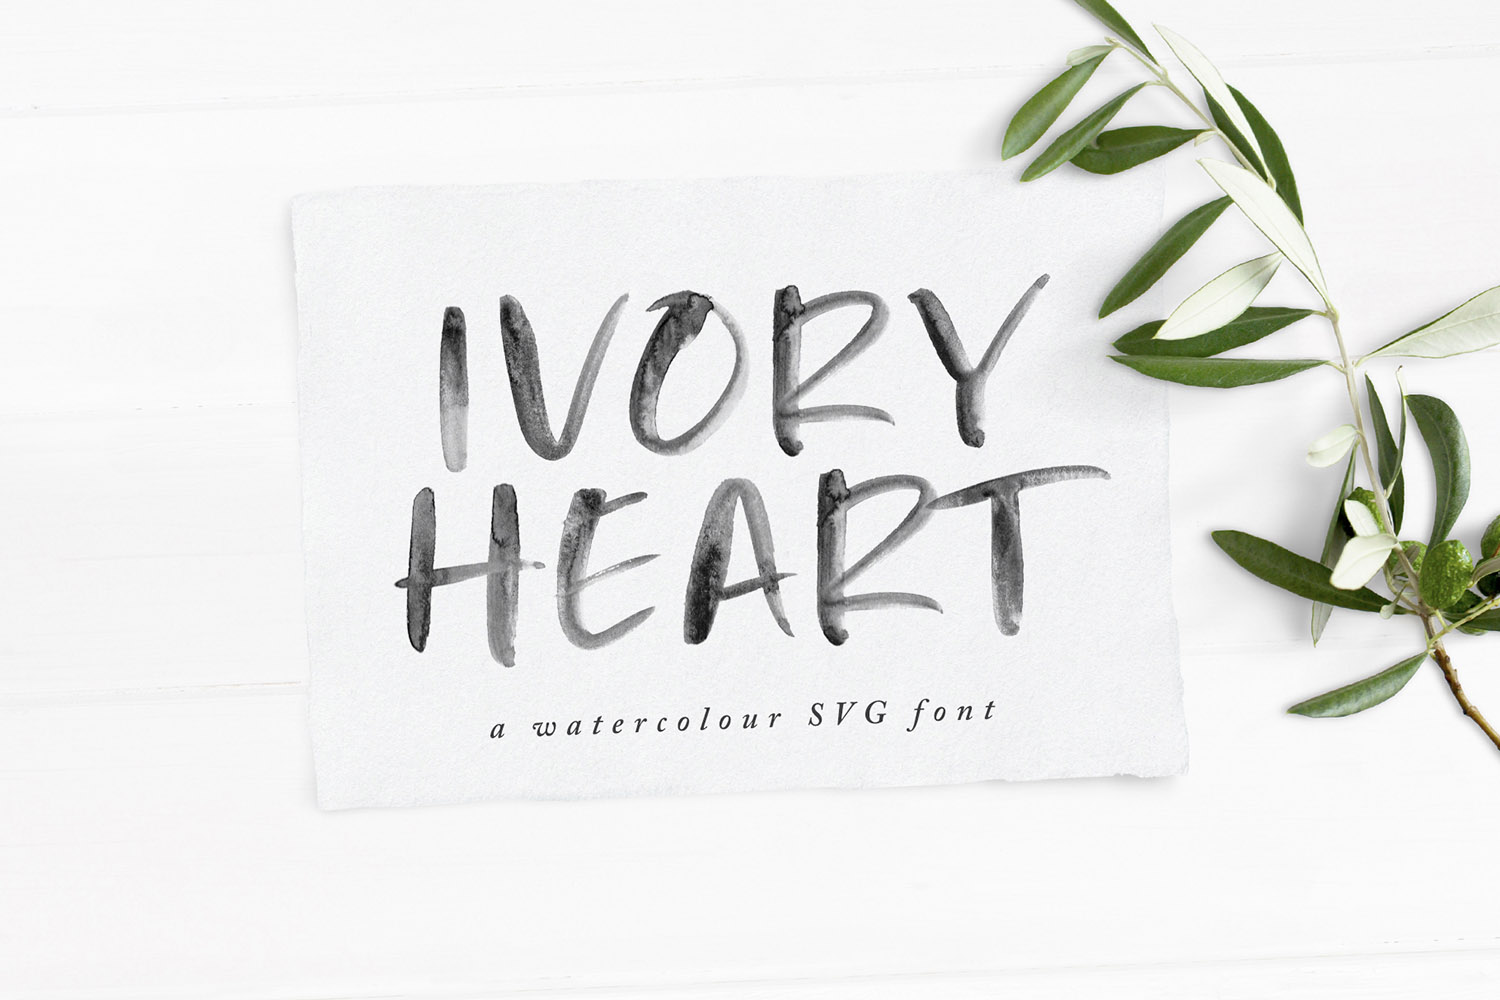 Ivory Heart Brush Free SVG Font